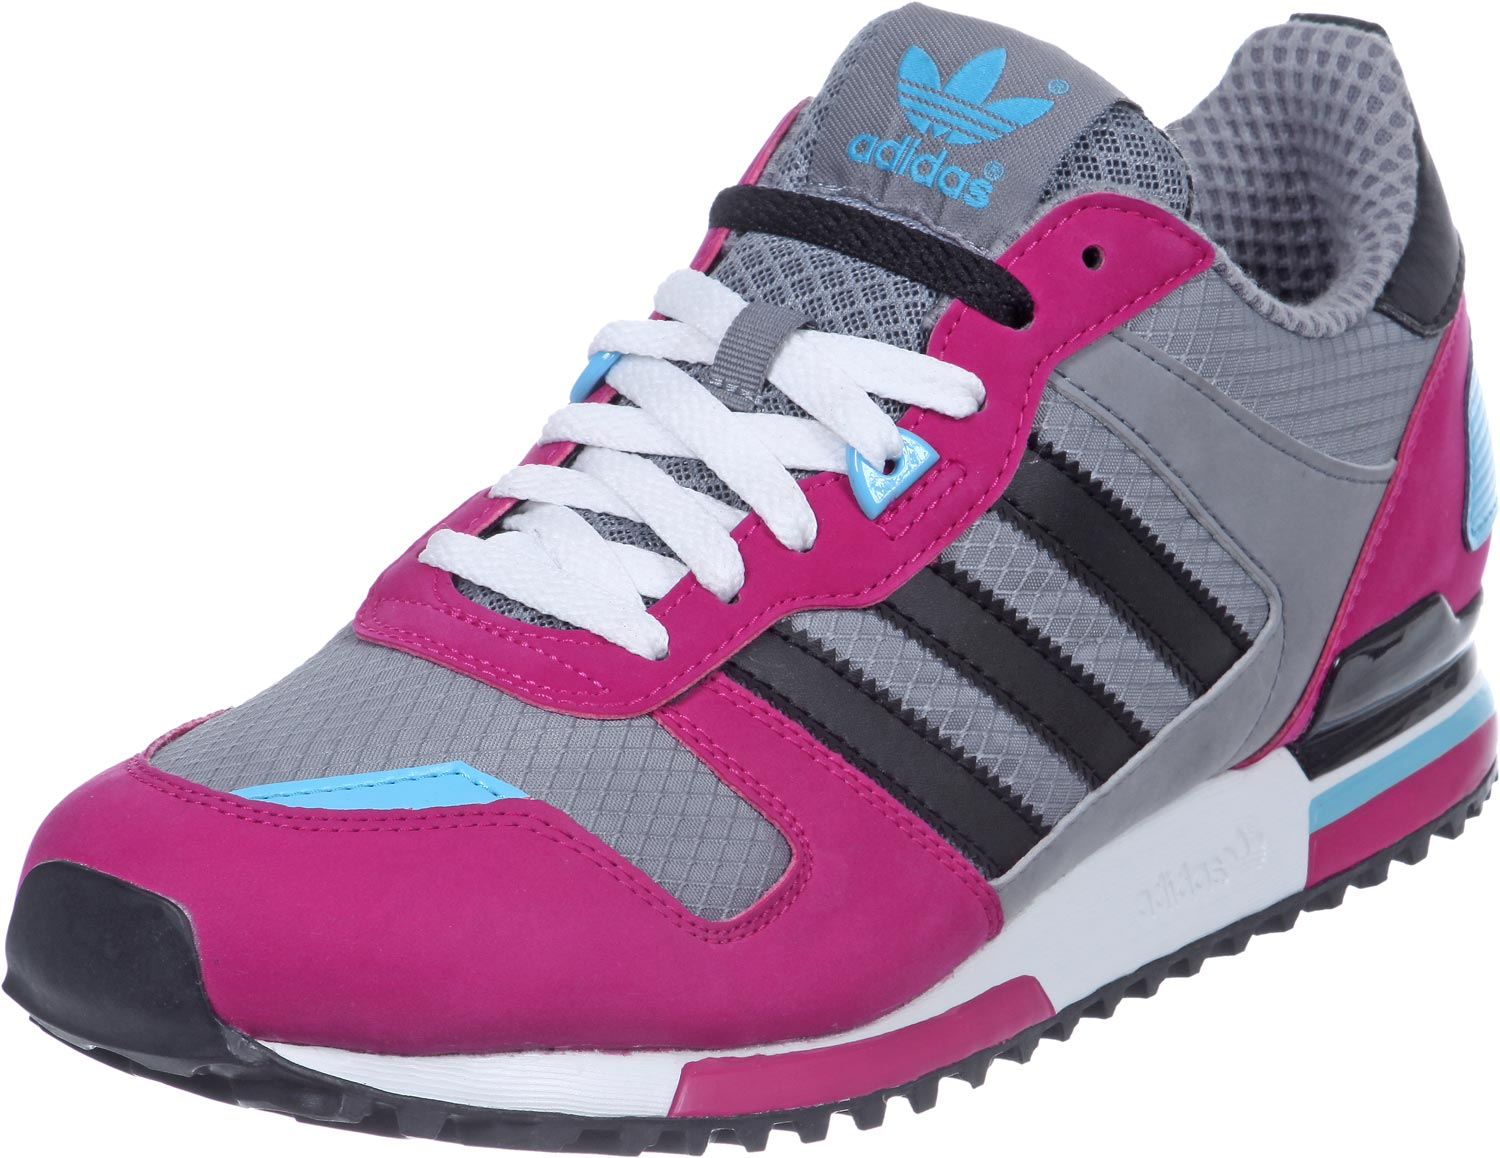 newest d9d3f 07ba2 ... discount code for adidas zx 700 nero c9f08 68182